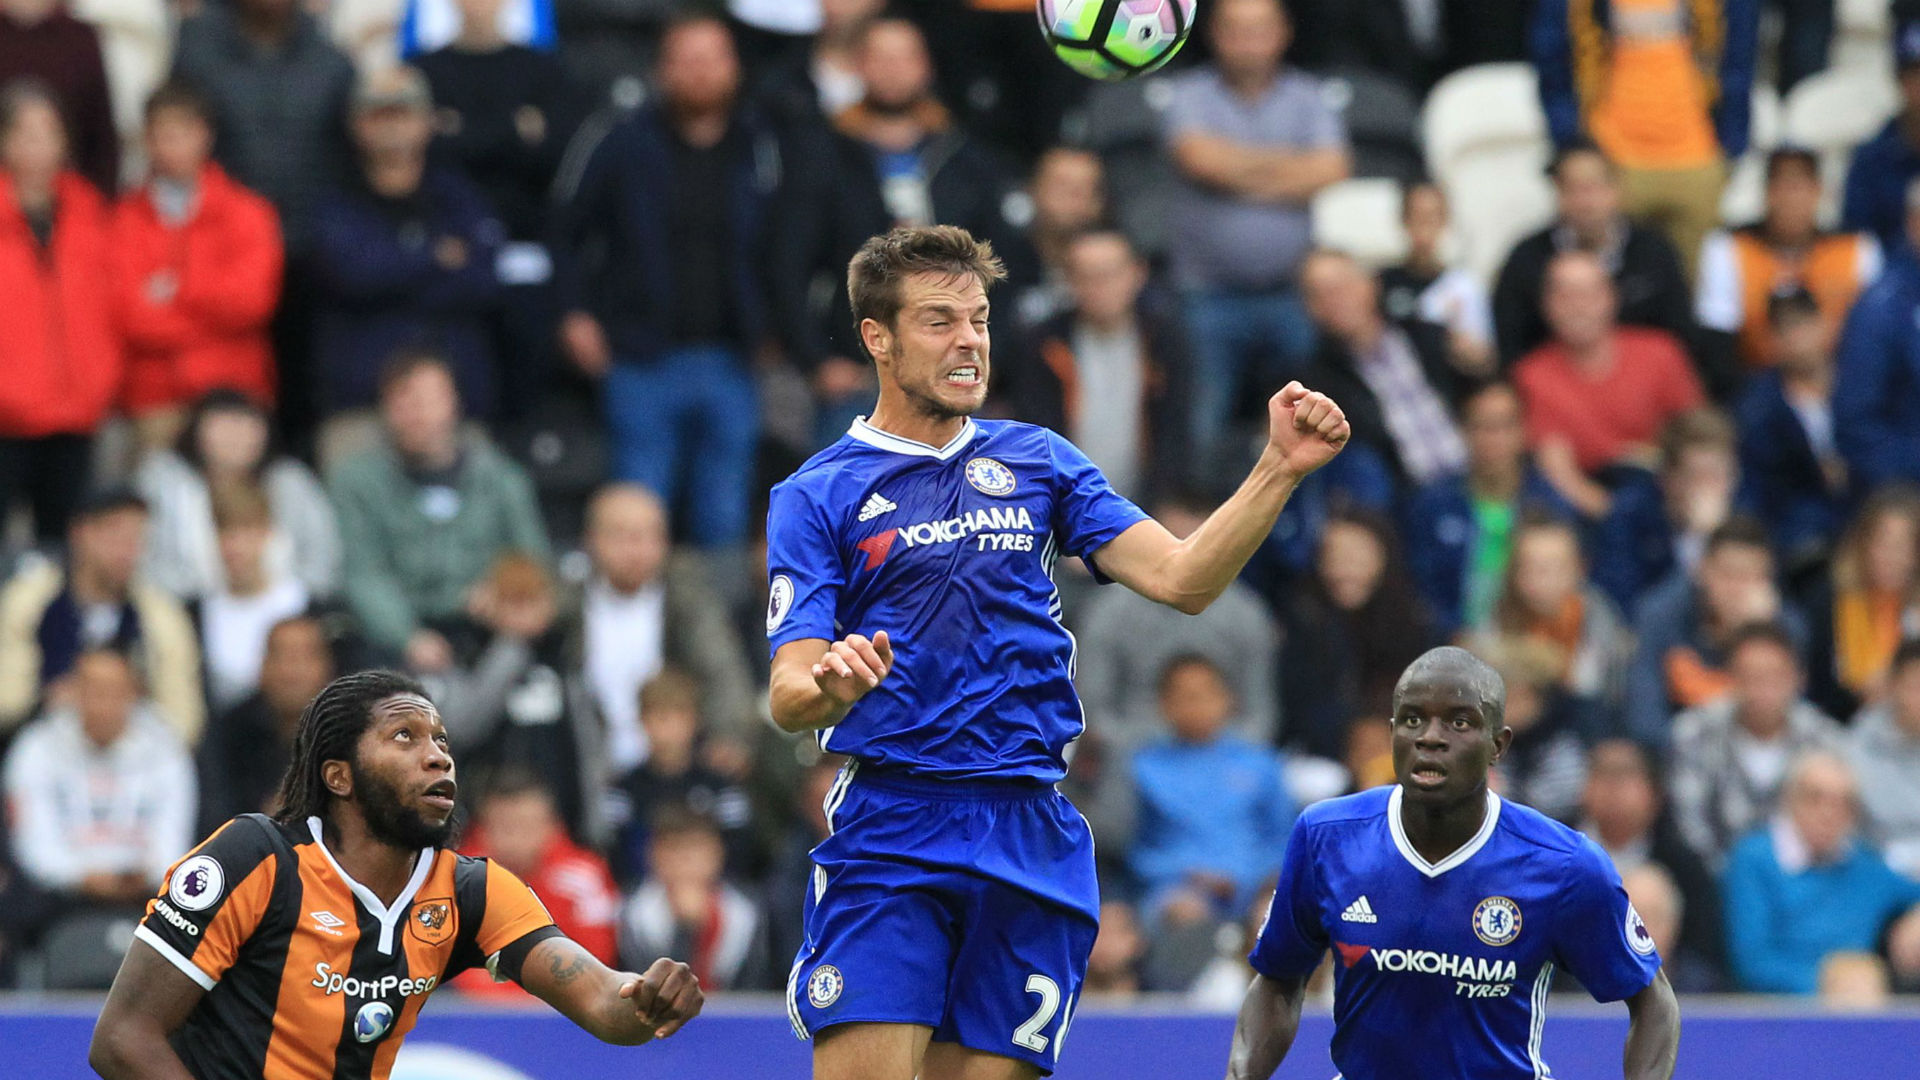 hull-chelsea_1fcmg456piv9n1px954qcad8s6.